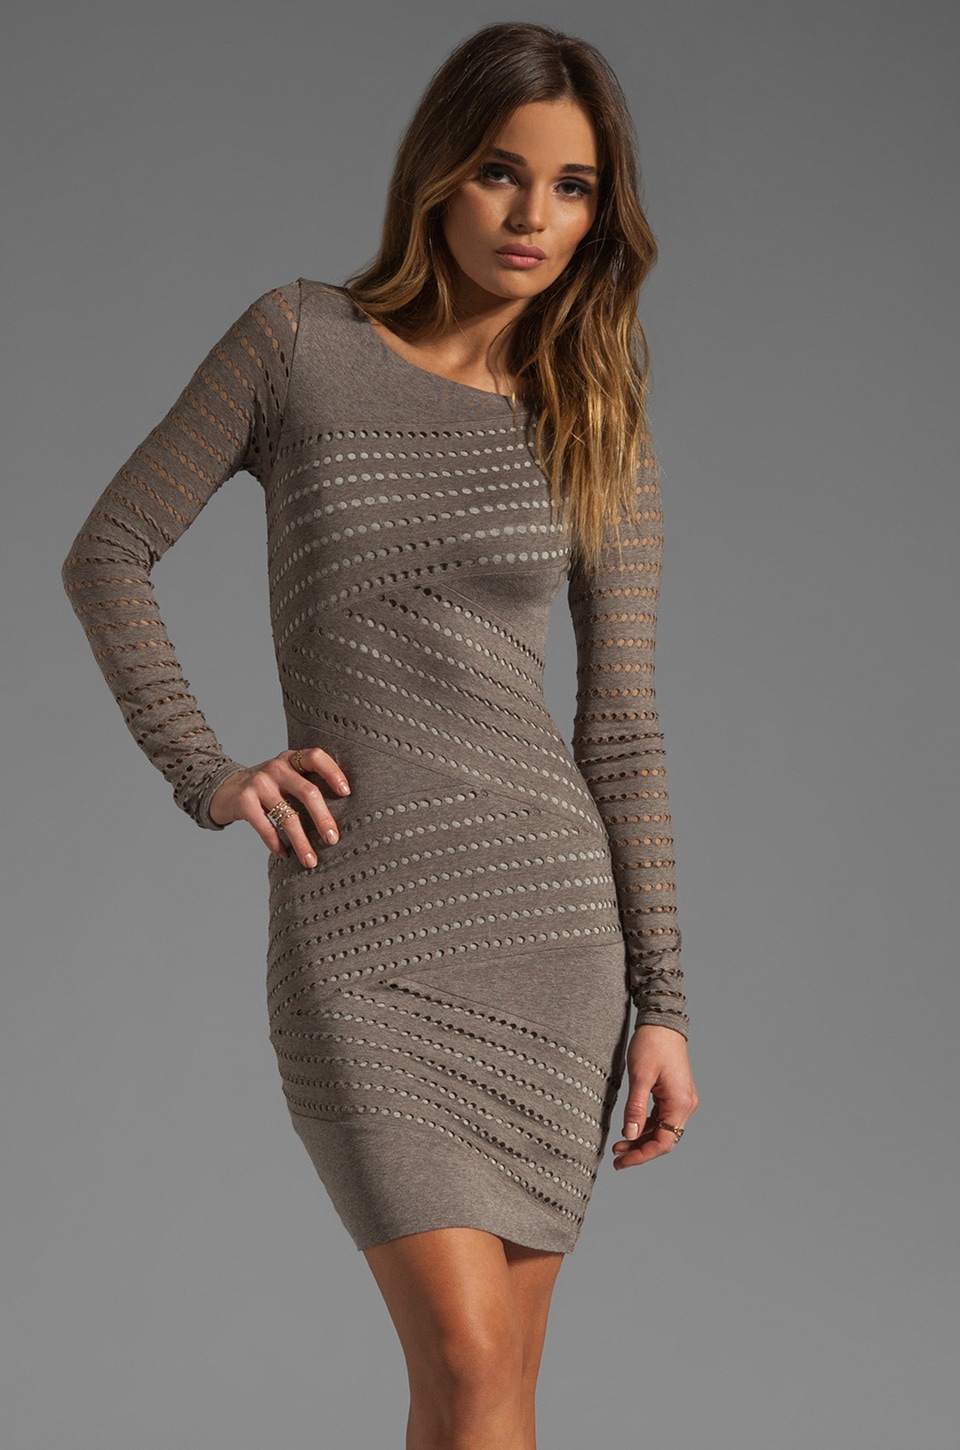 Bailey 44 Tower of Babel Dress in Clay